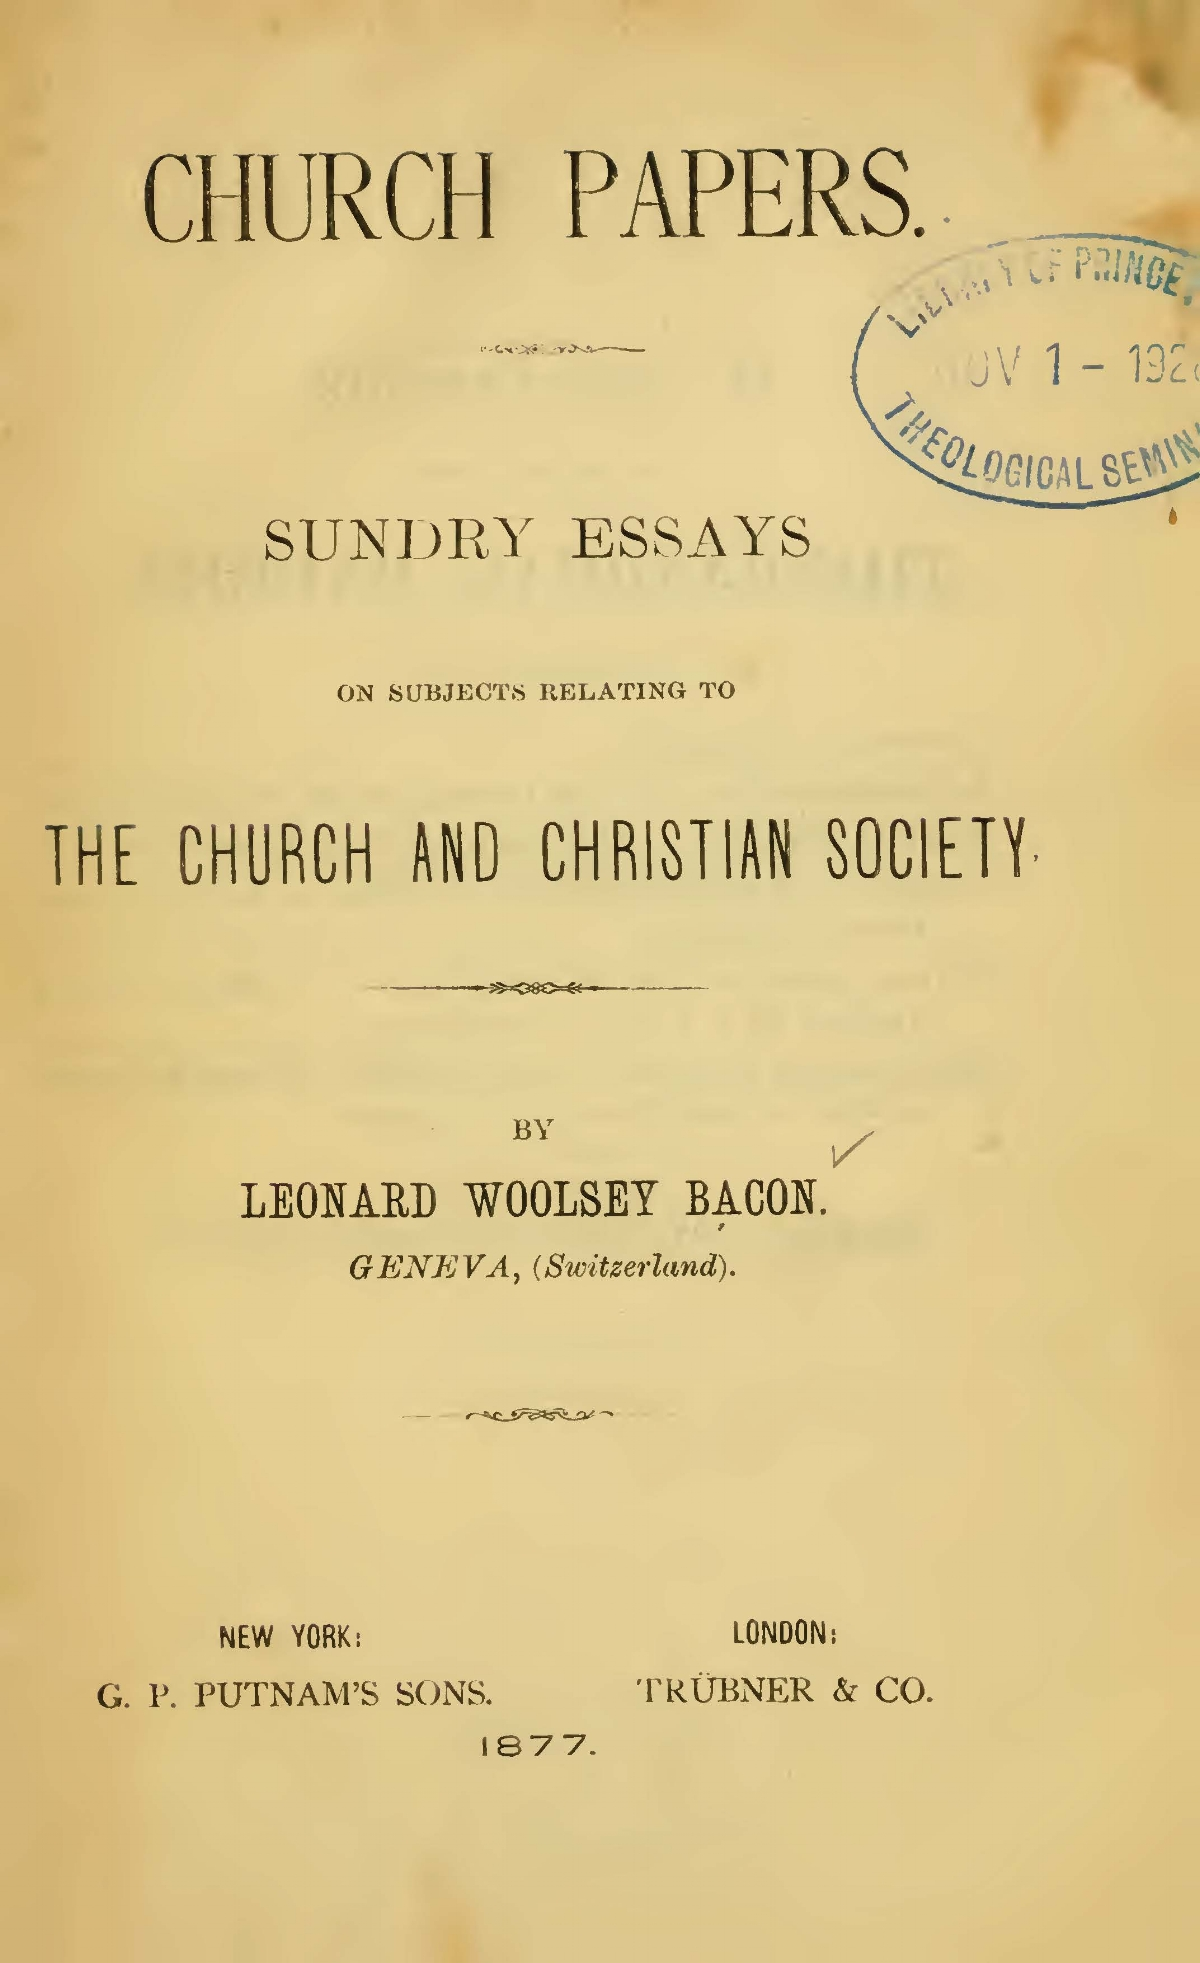 Bacon, Leonard Woolsey, Church Papers Title Page.jpg